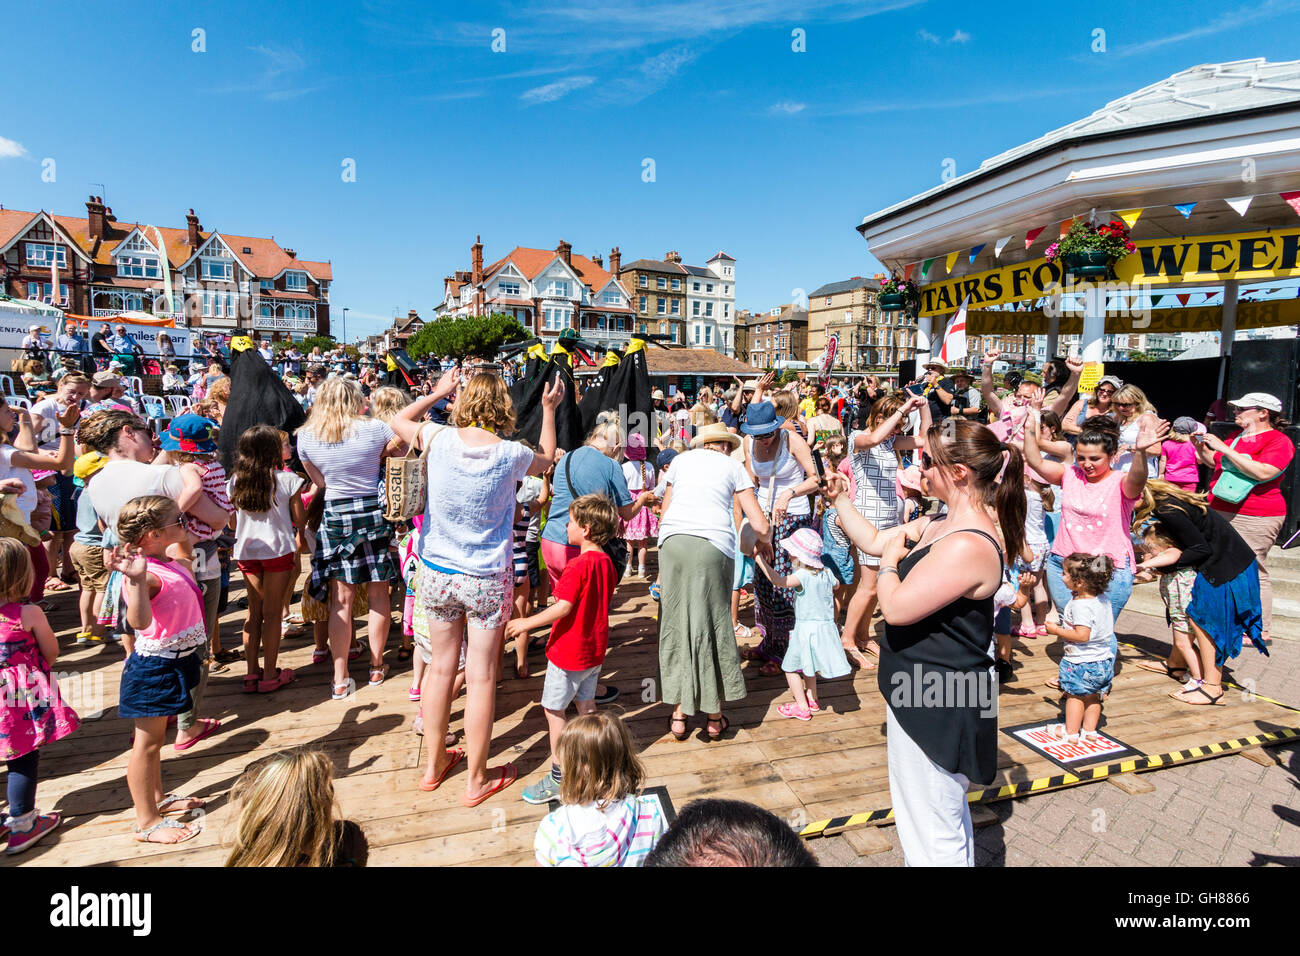 'Hobby Horse Club' event during the Broadstairs Folk Week. Ossies, iconic black bird figures on crowded - Stock Image